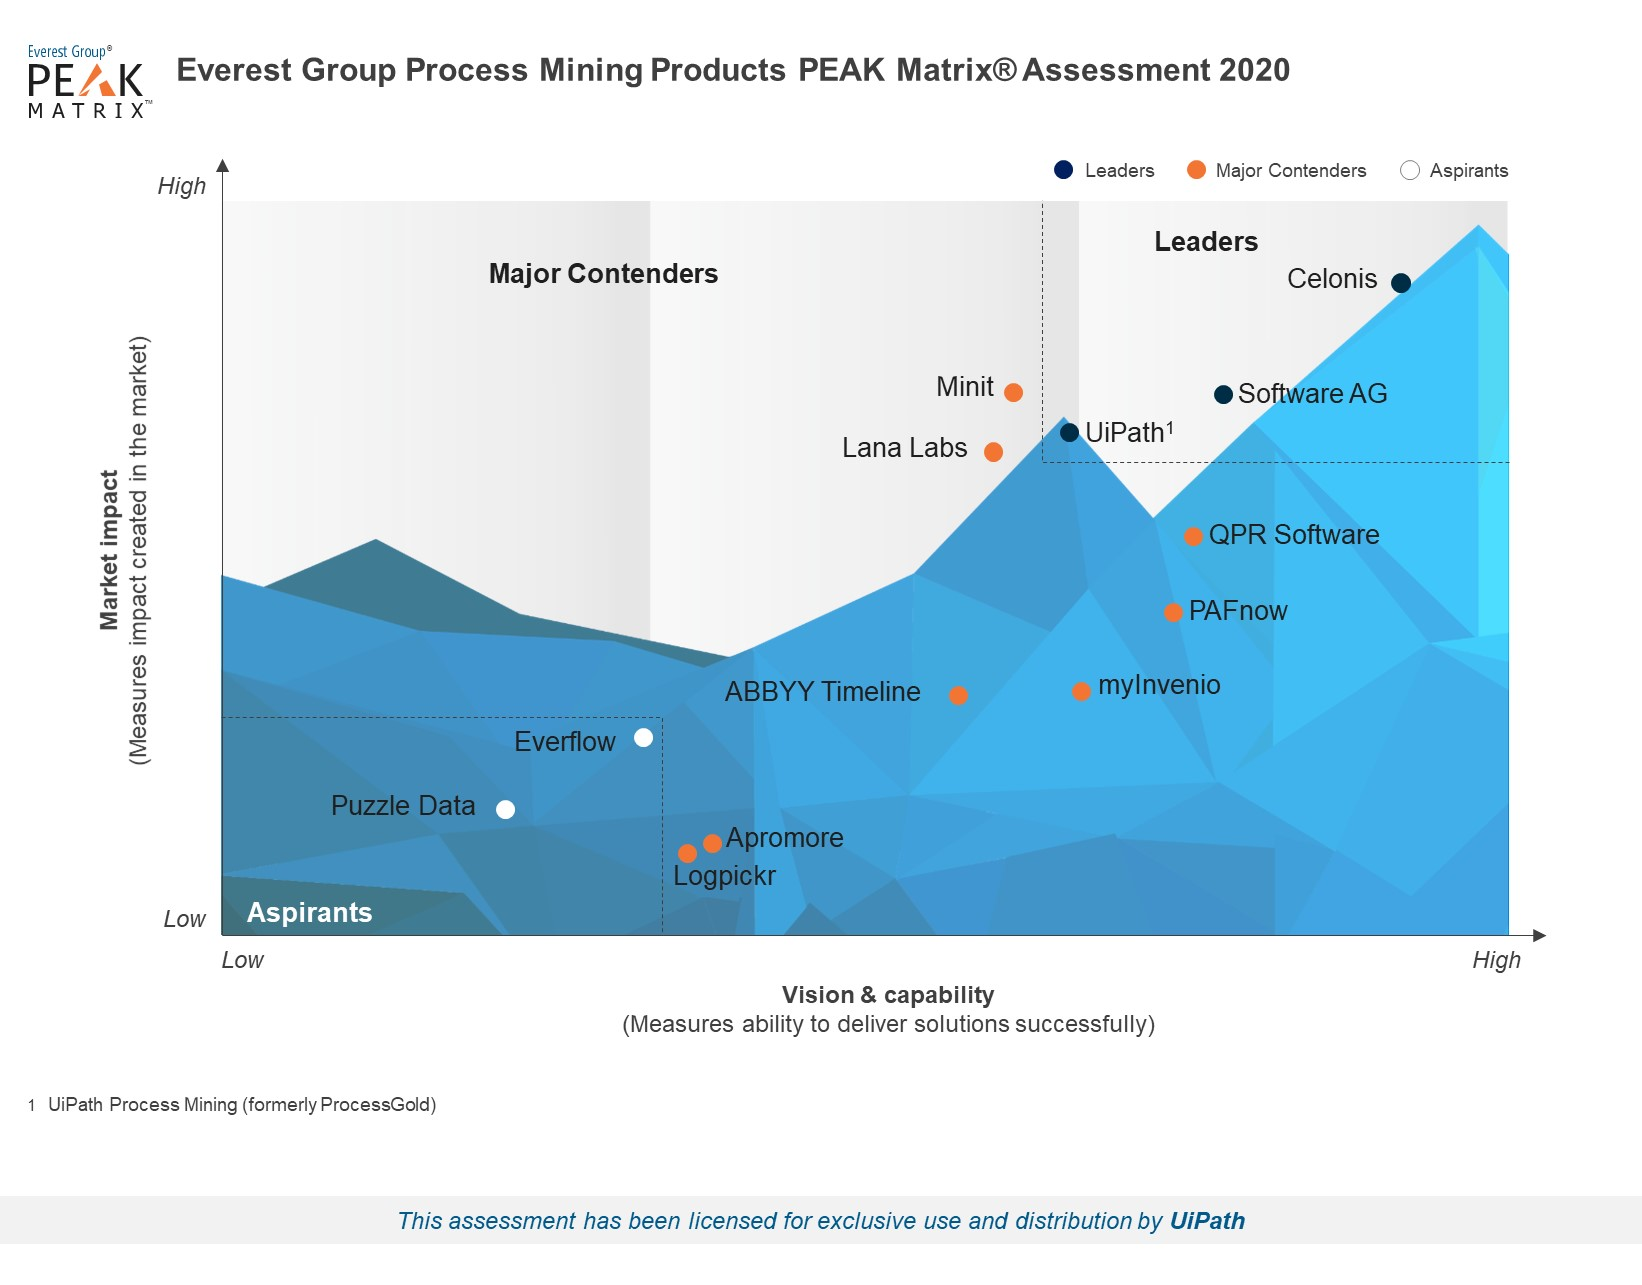 High-Res-PEAK-2020-Process-Mining-Products-For-UiPath